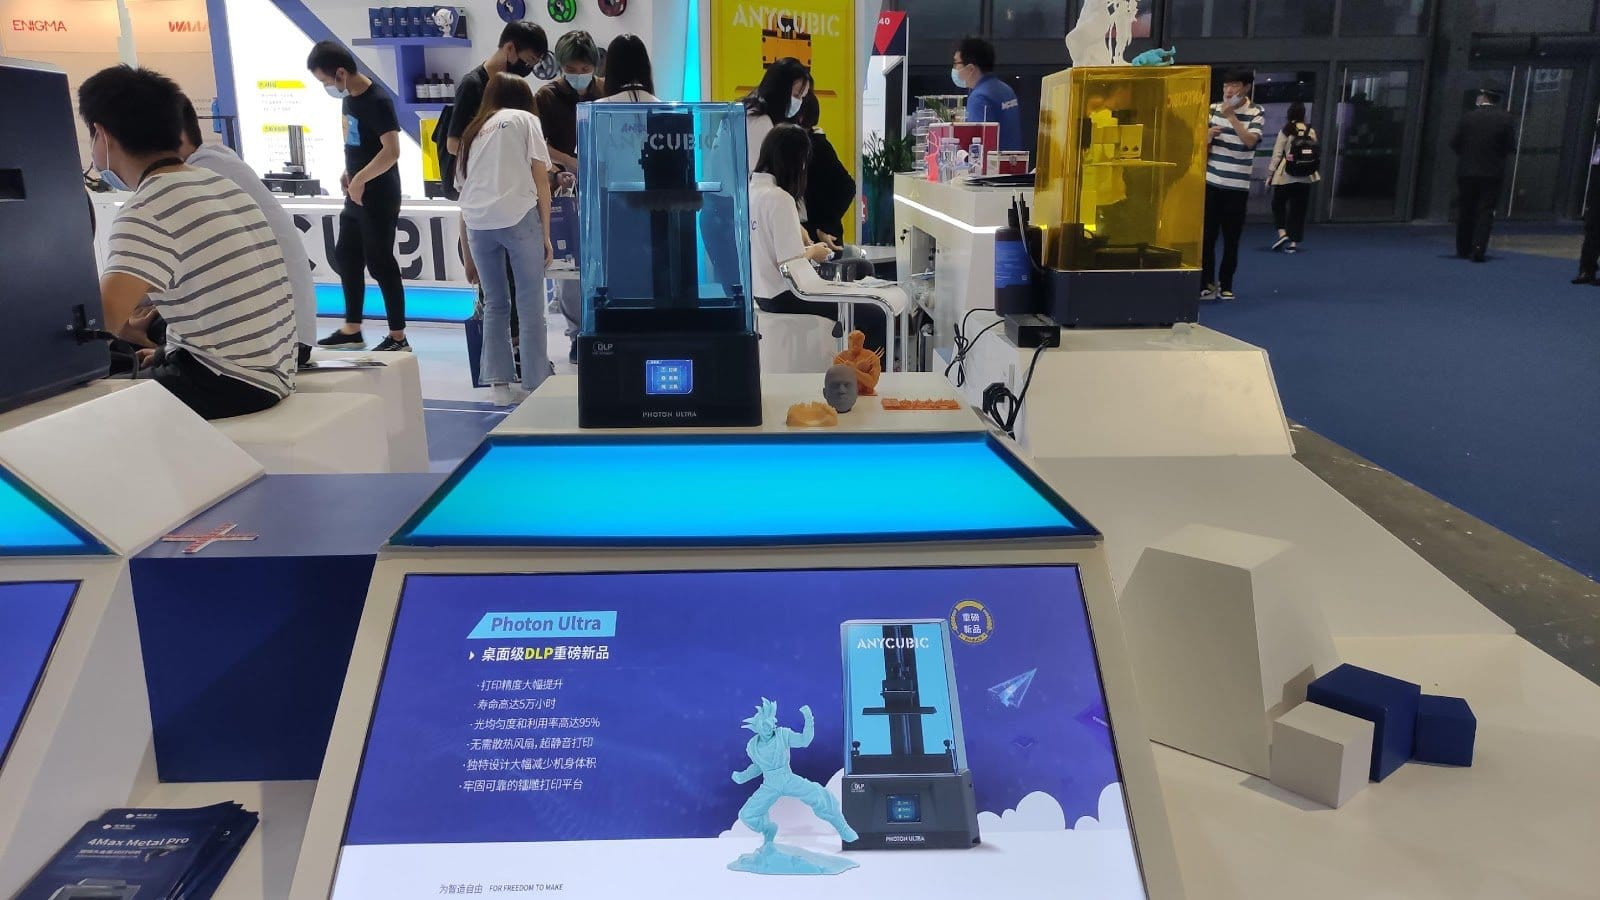 China accounts for 70% of the global desktop 3D printer market